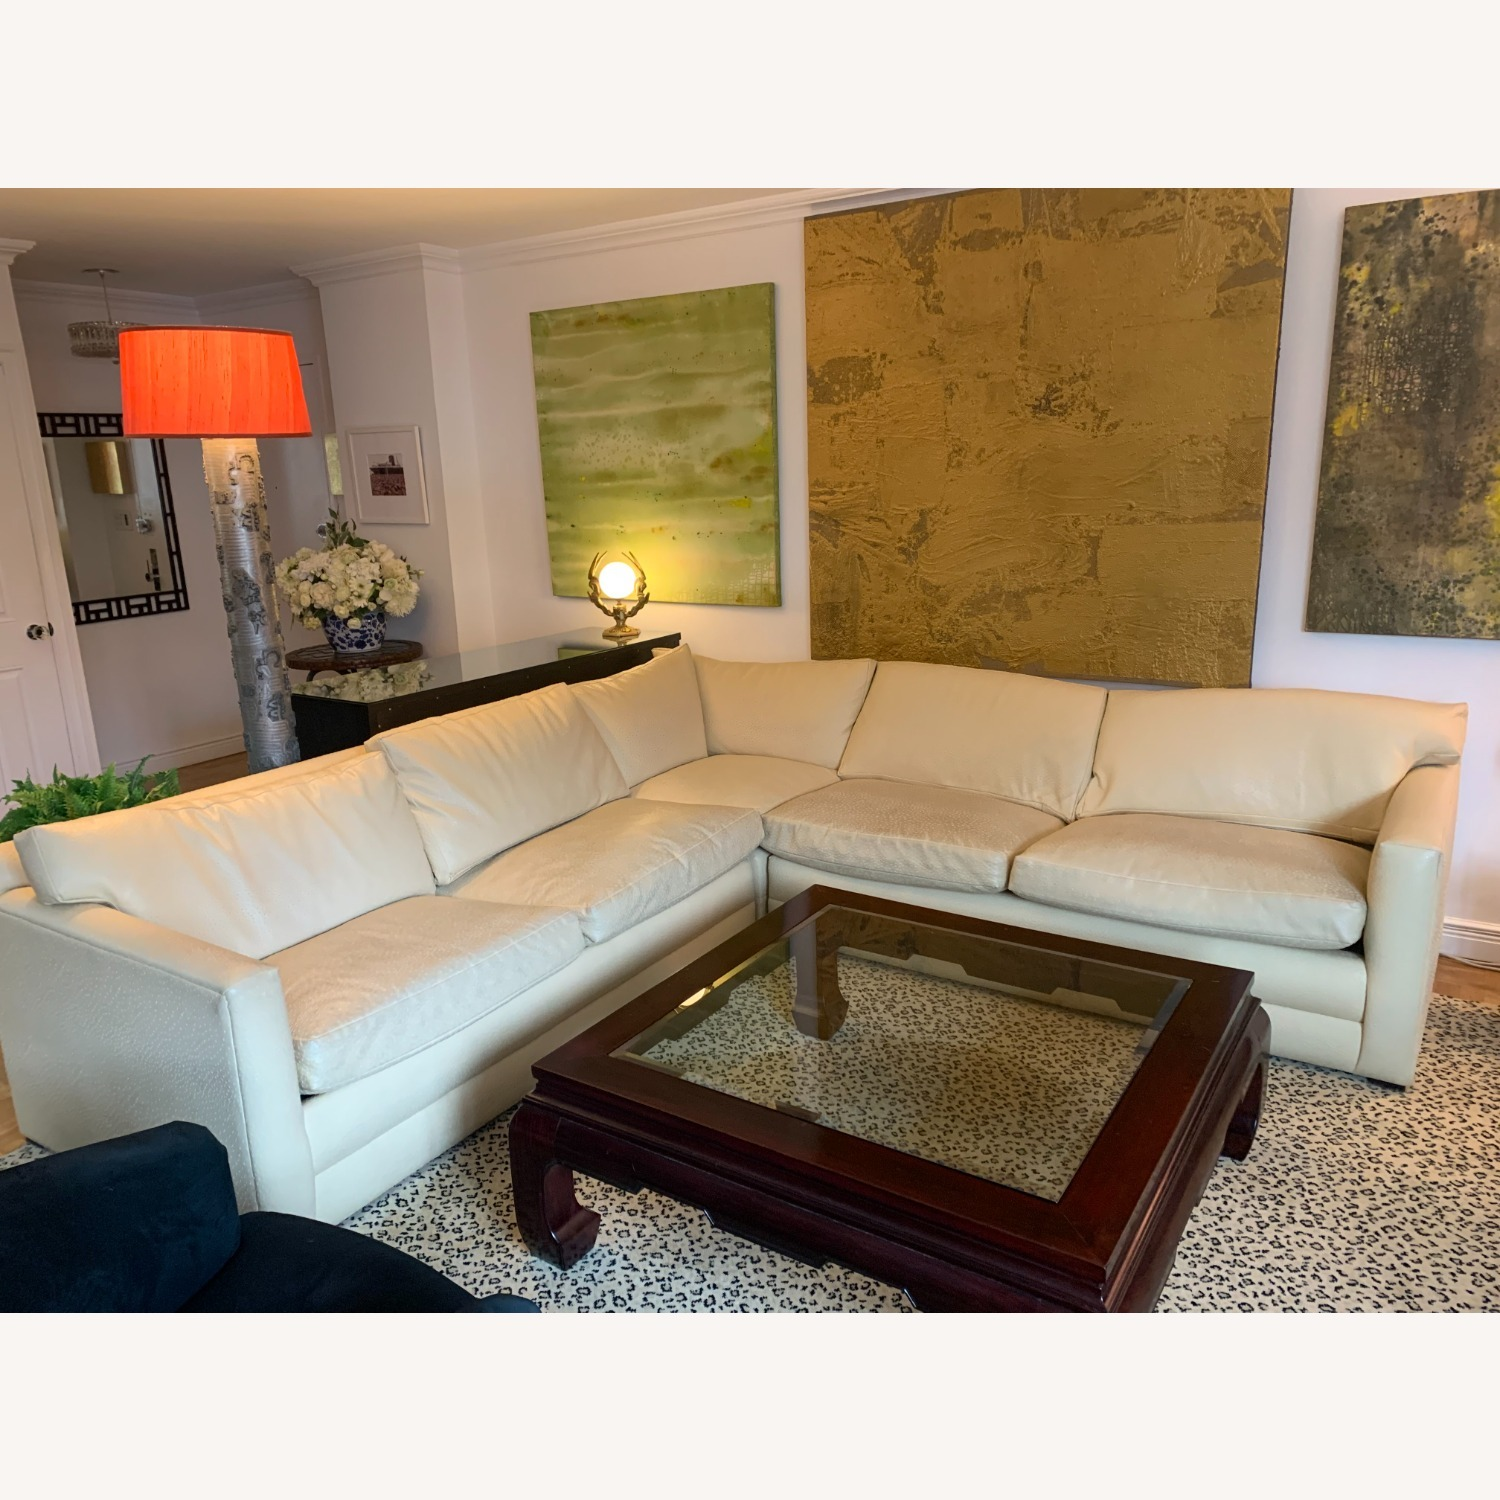 Sectional Sofa With Queen-Size Bed - image-0